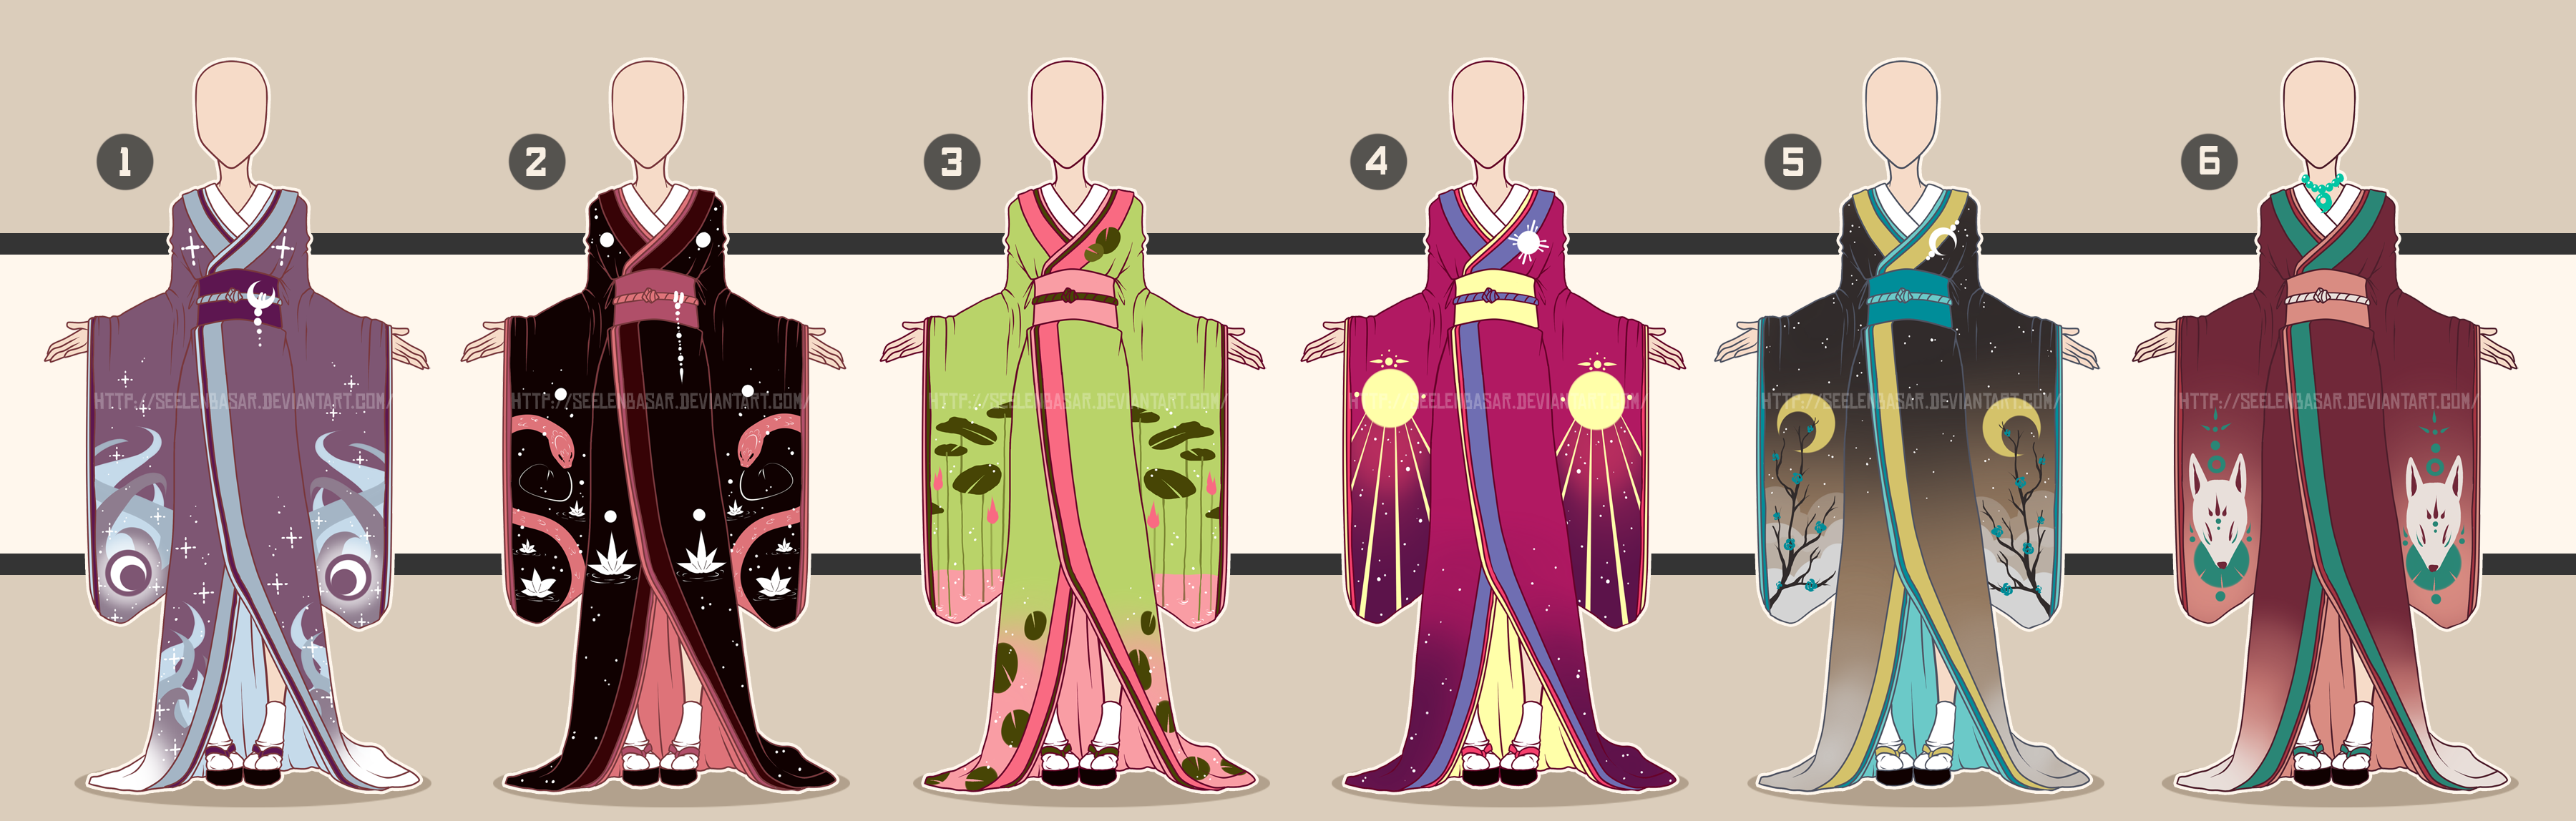 Fashion 2017 clothes - Of Sun And Moon Kimono Adopts 0 6 Closed By